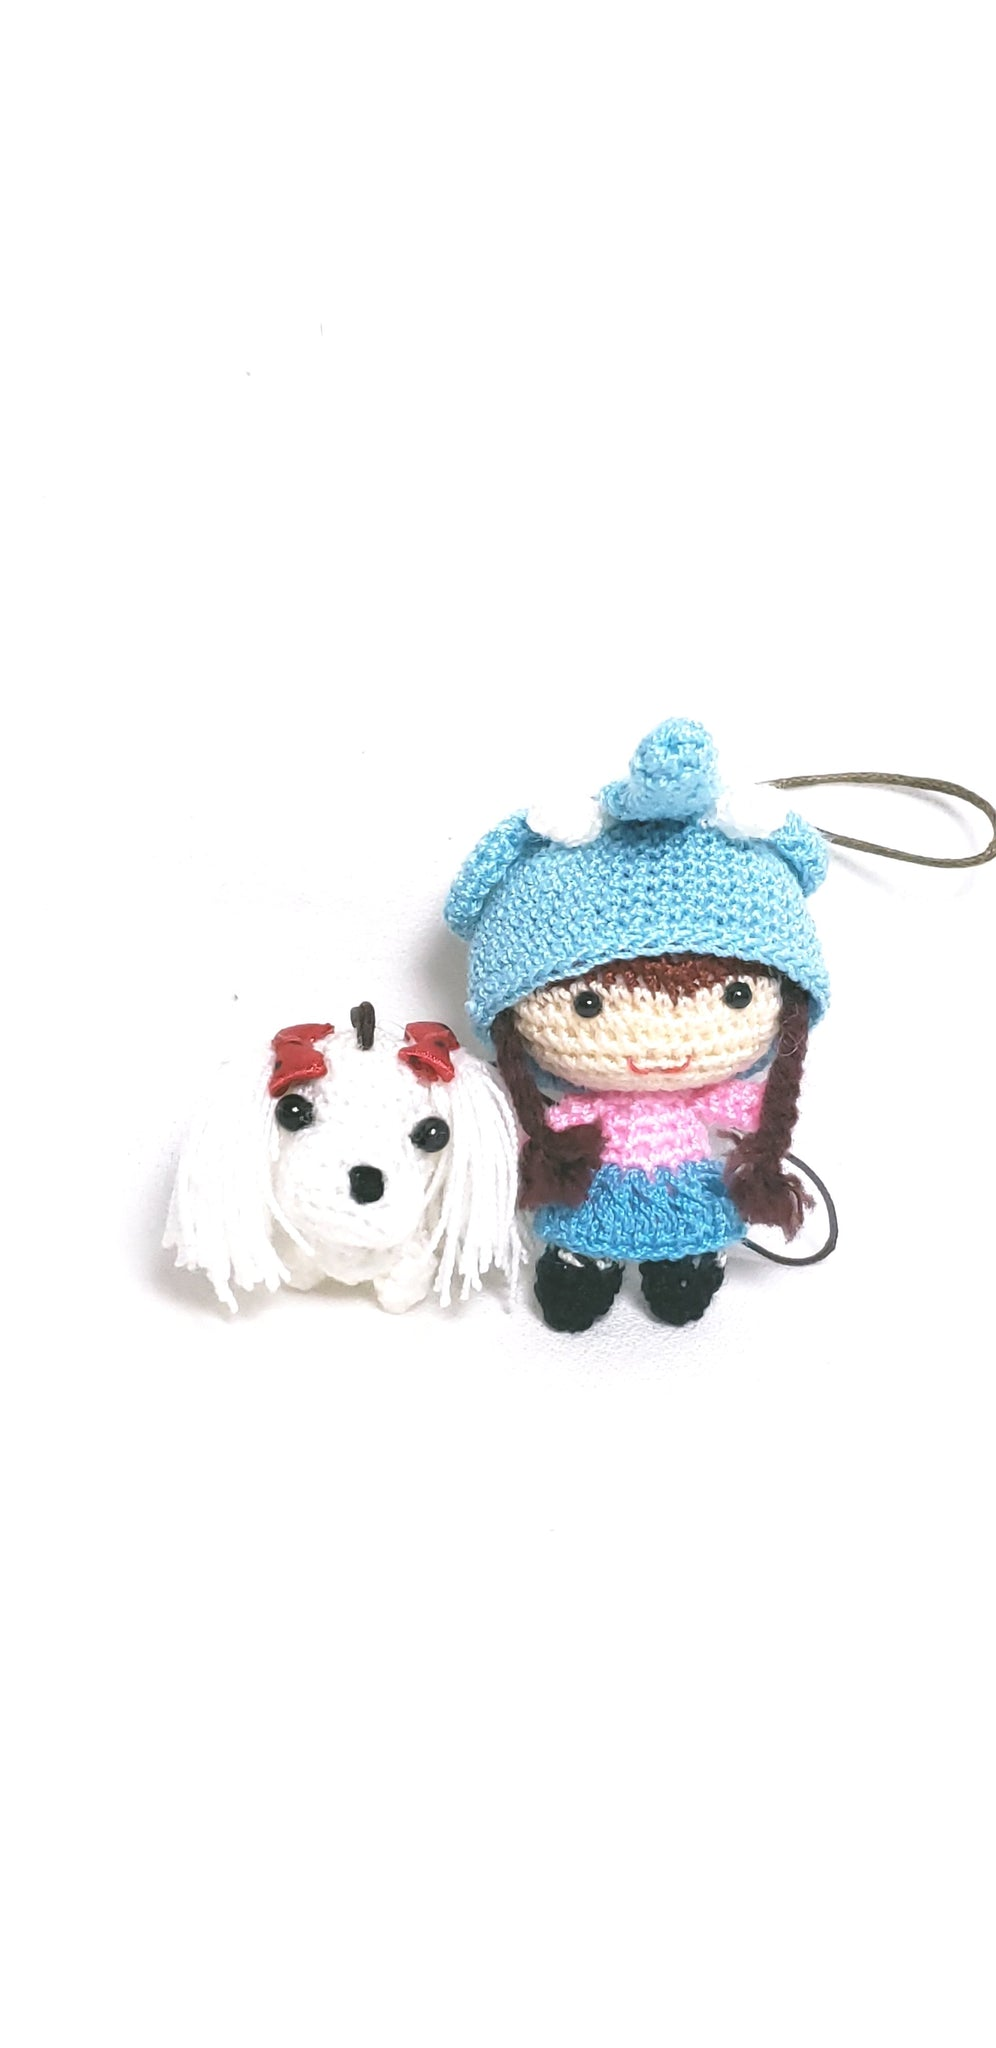 "Amigurumi little girl elephant hat  2"" height with cute dog 1.5"" height , 100% hand crochet ,ornament  ,keychain."